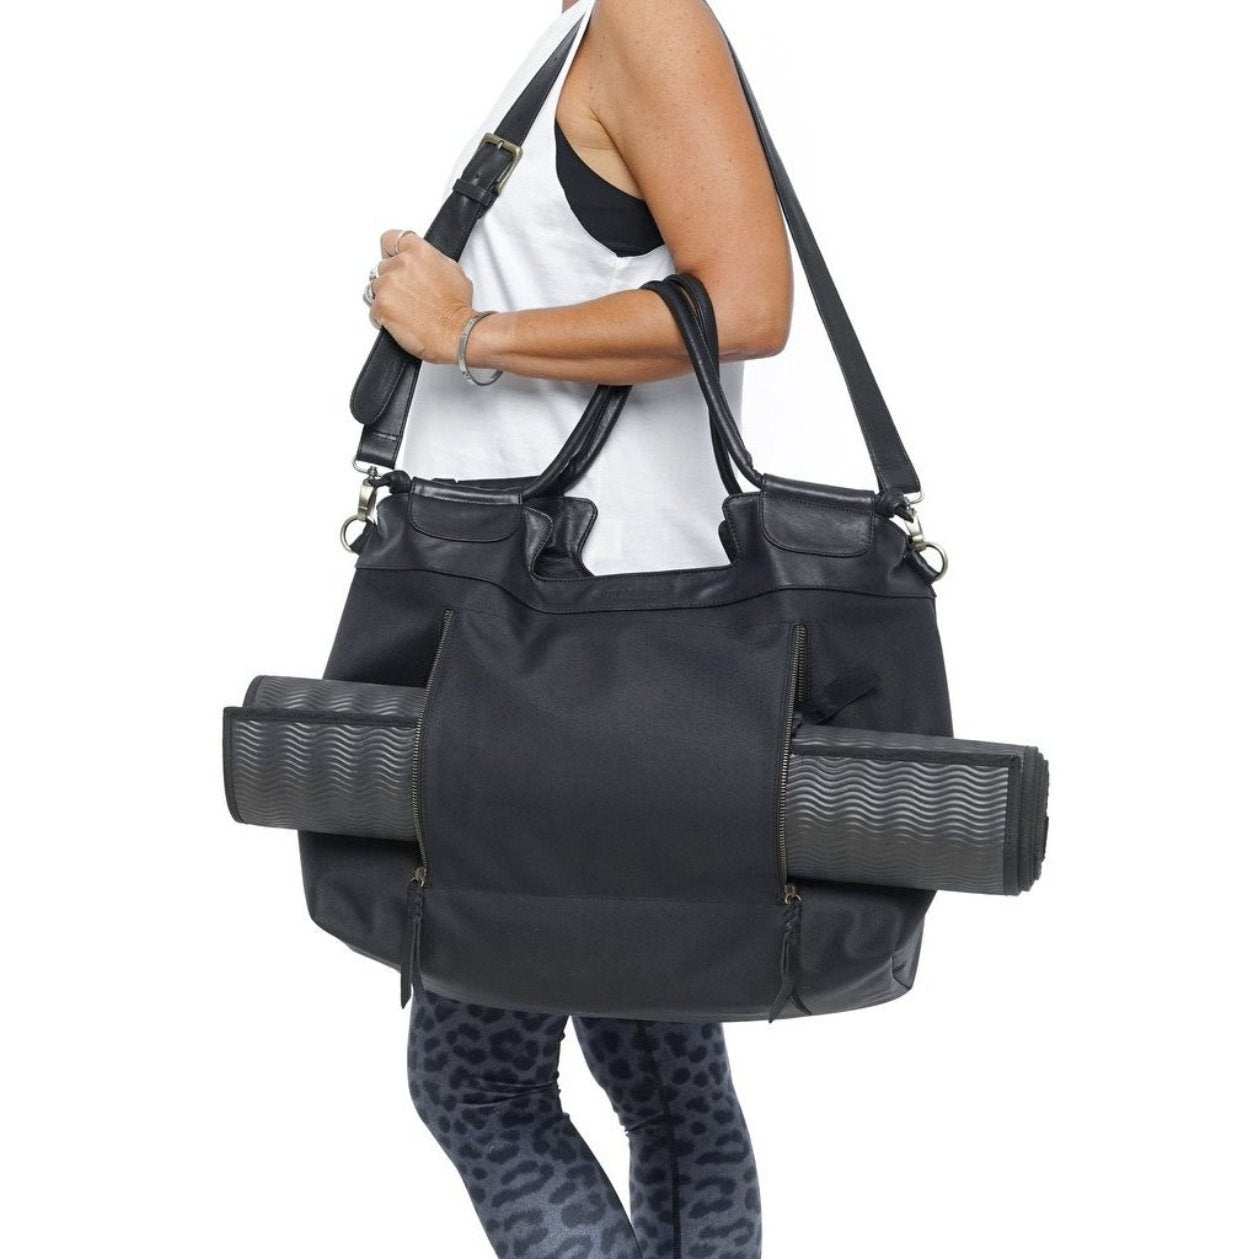 Black leather and nylon yoga bag weekend duffel